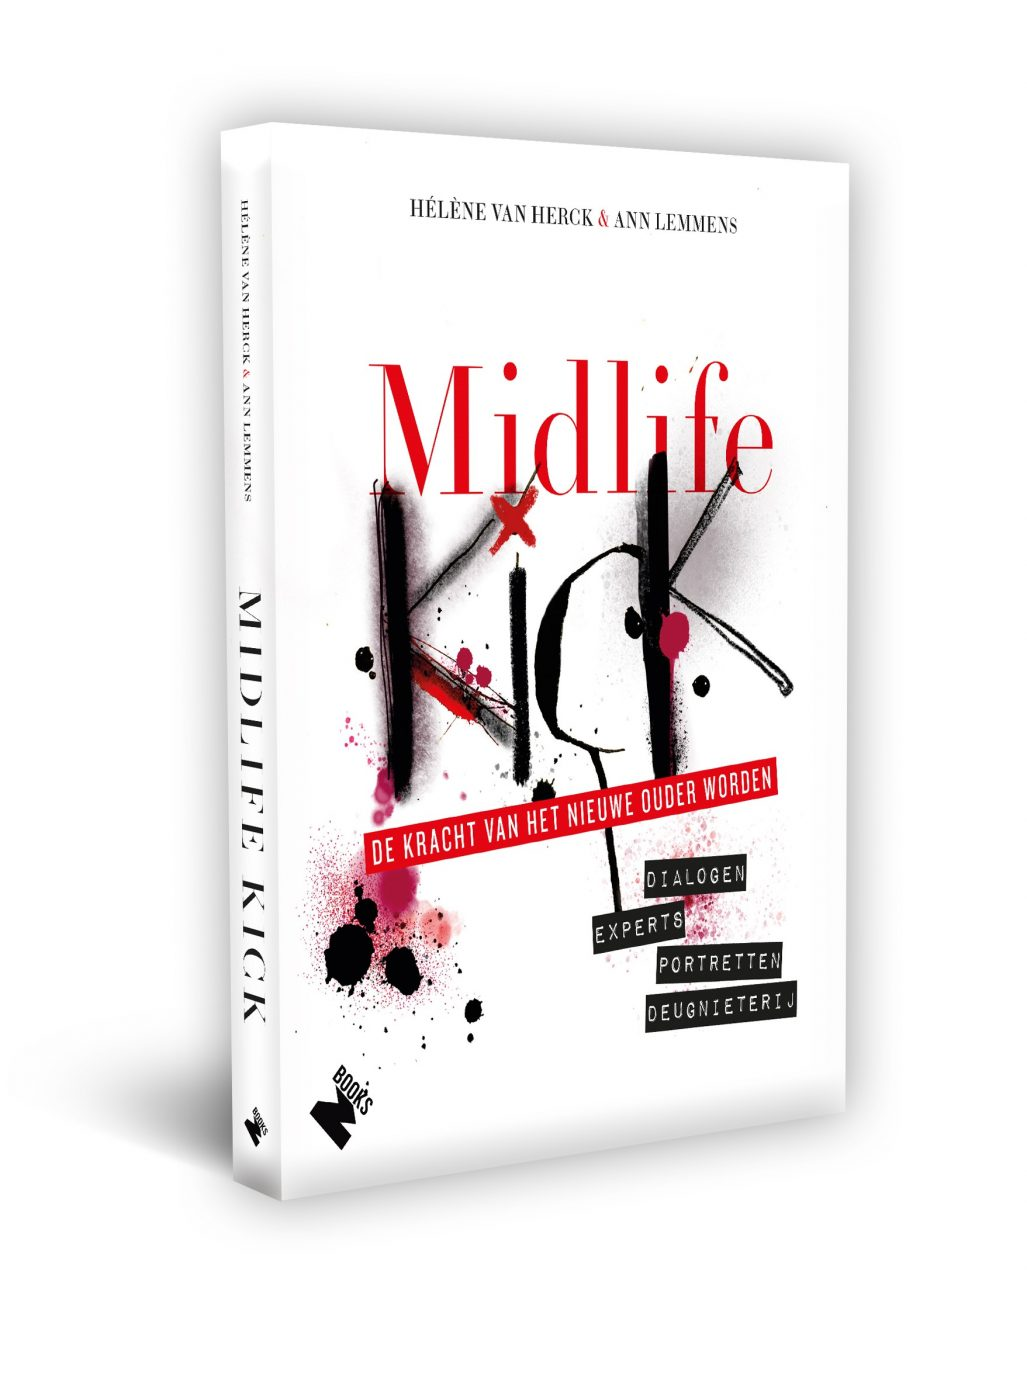 INFO OVER MIDLIFE KICK